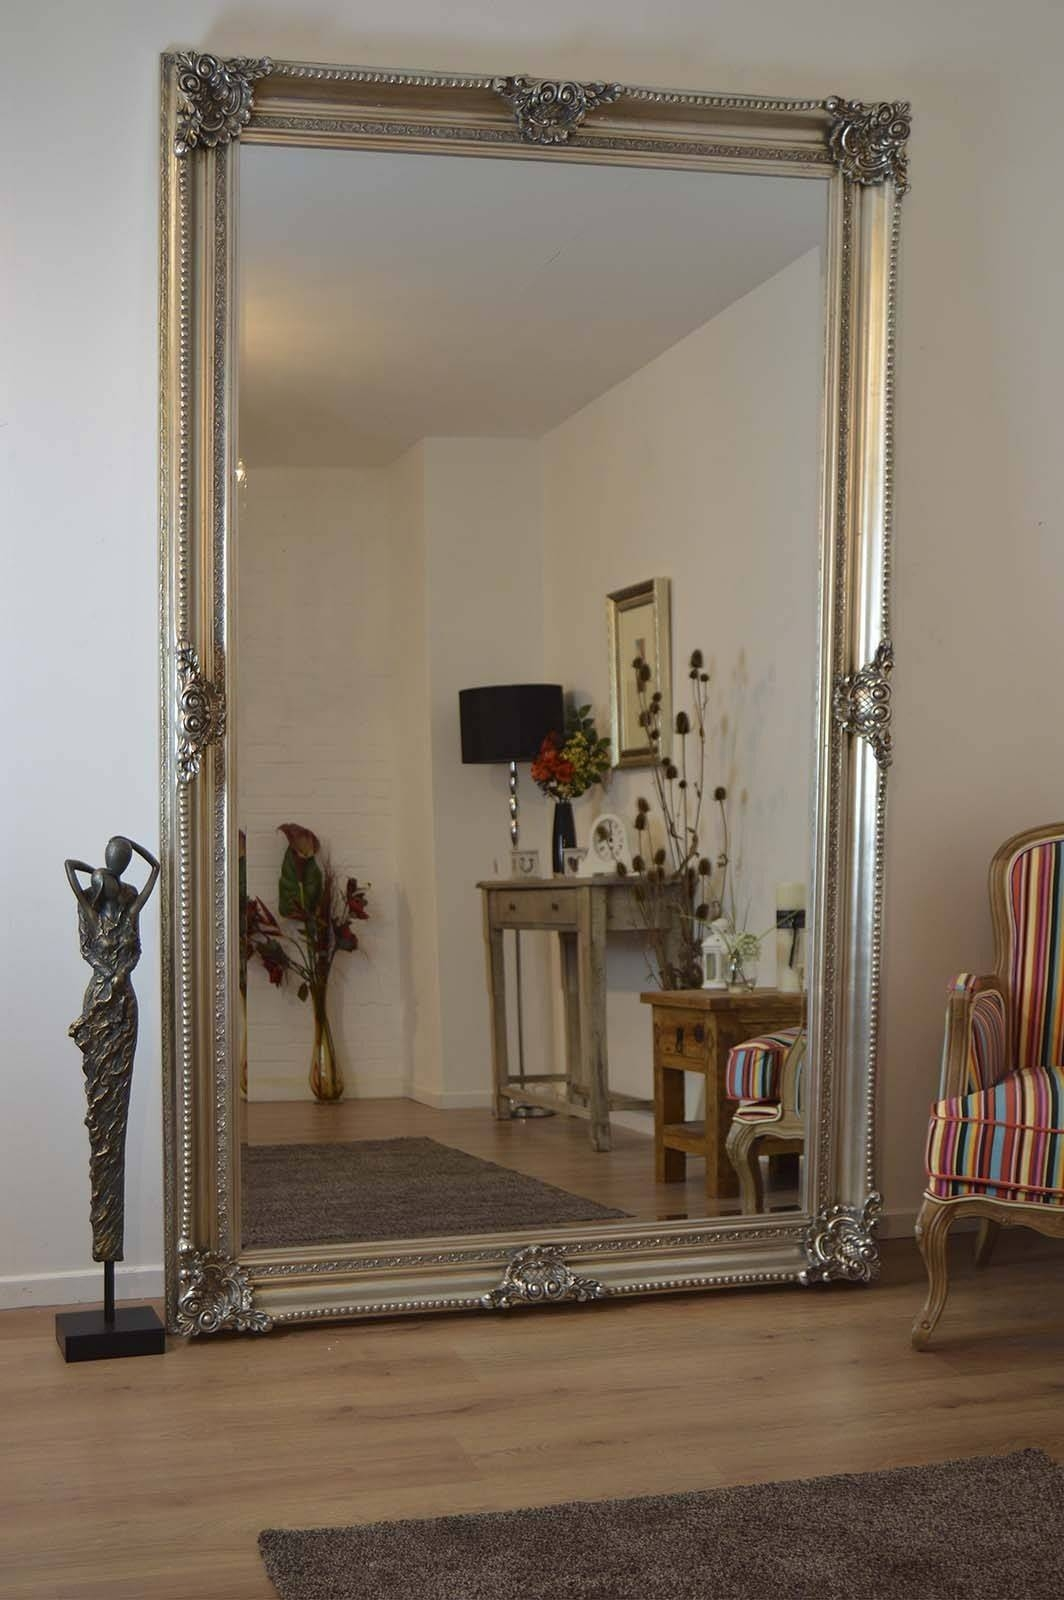 Antique Full Length Wall Mirrors Antique Wood Framed Wall Mirrors for Massive Mirrors (Image 2 of 25)